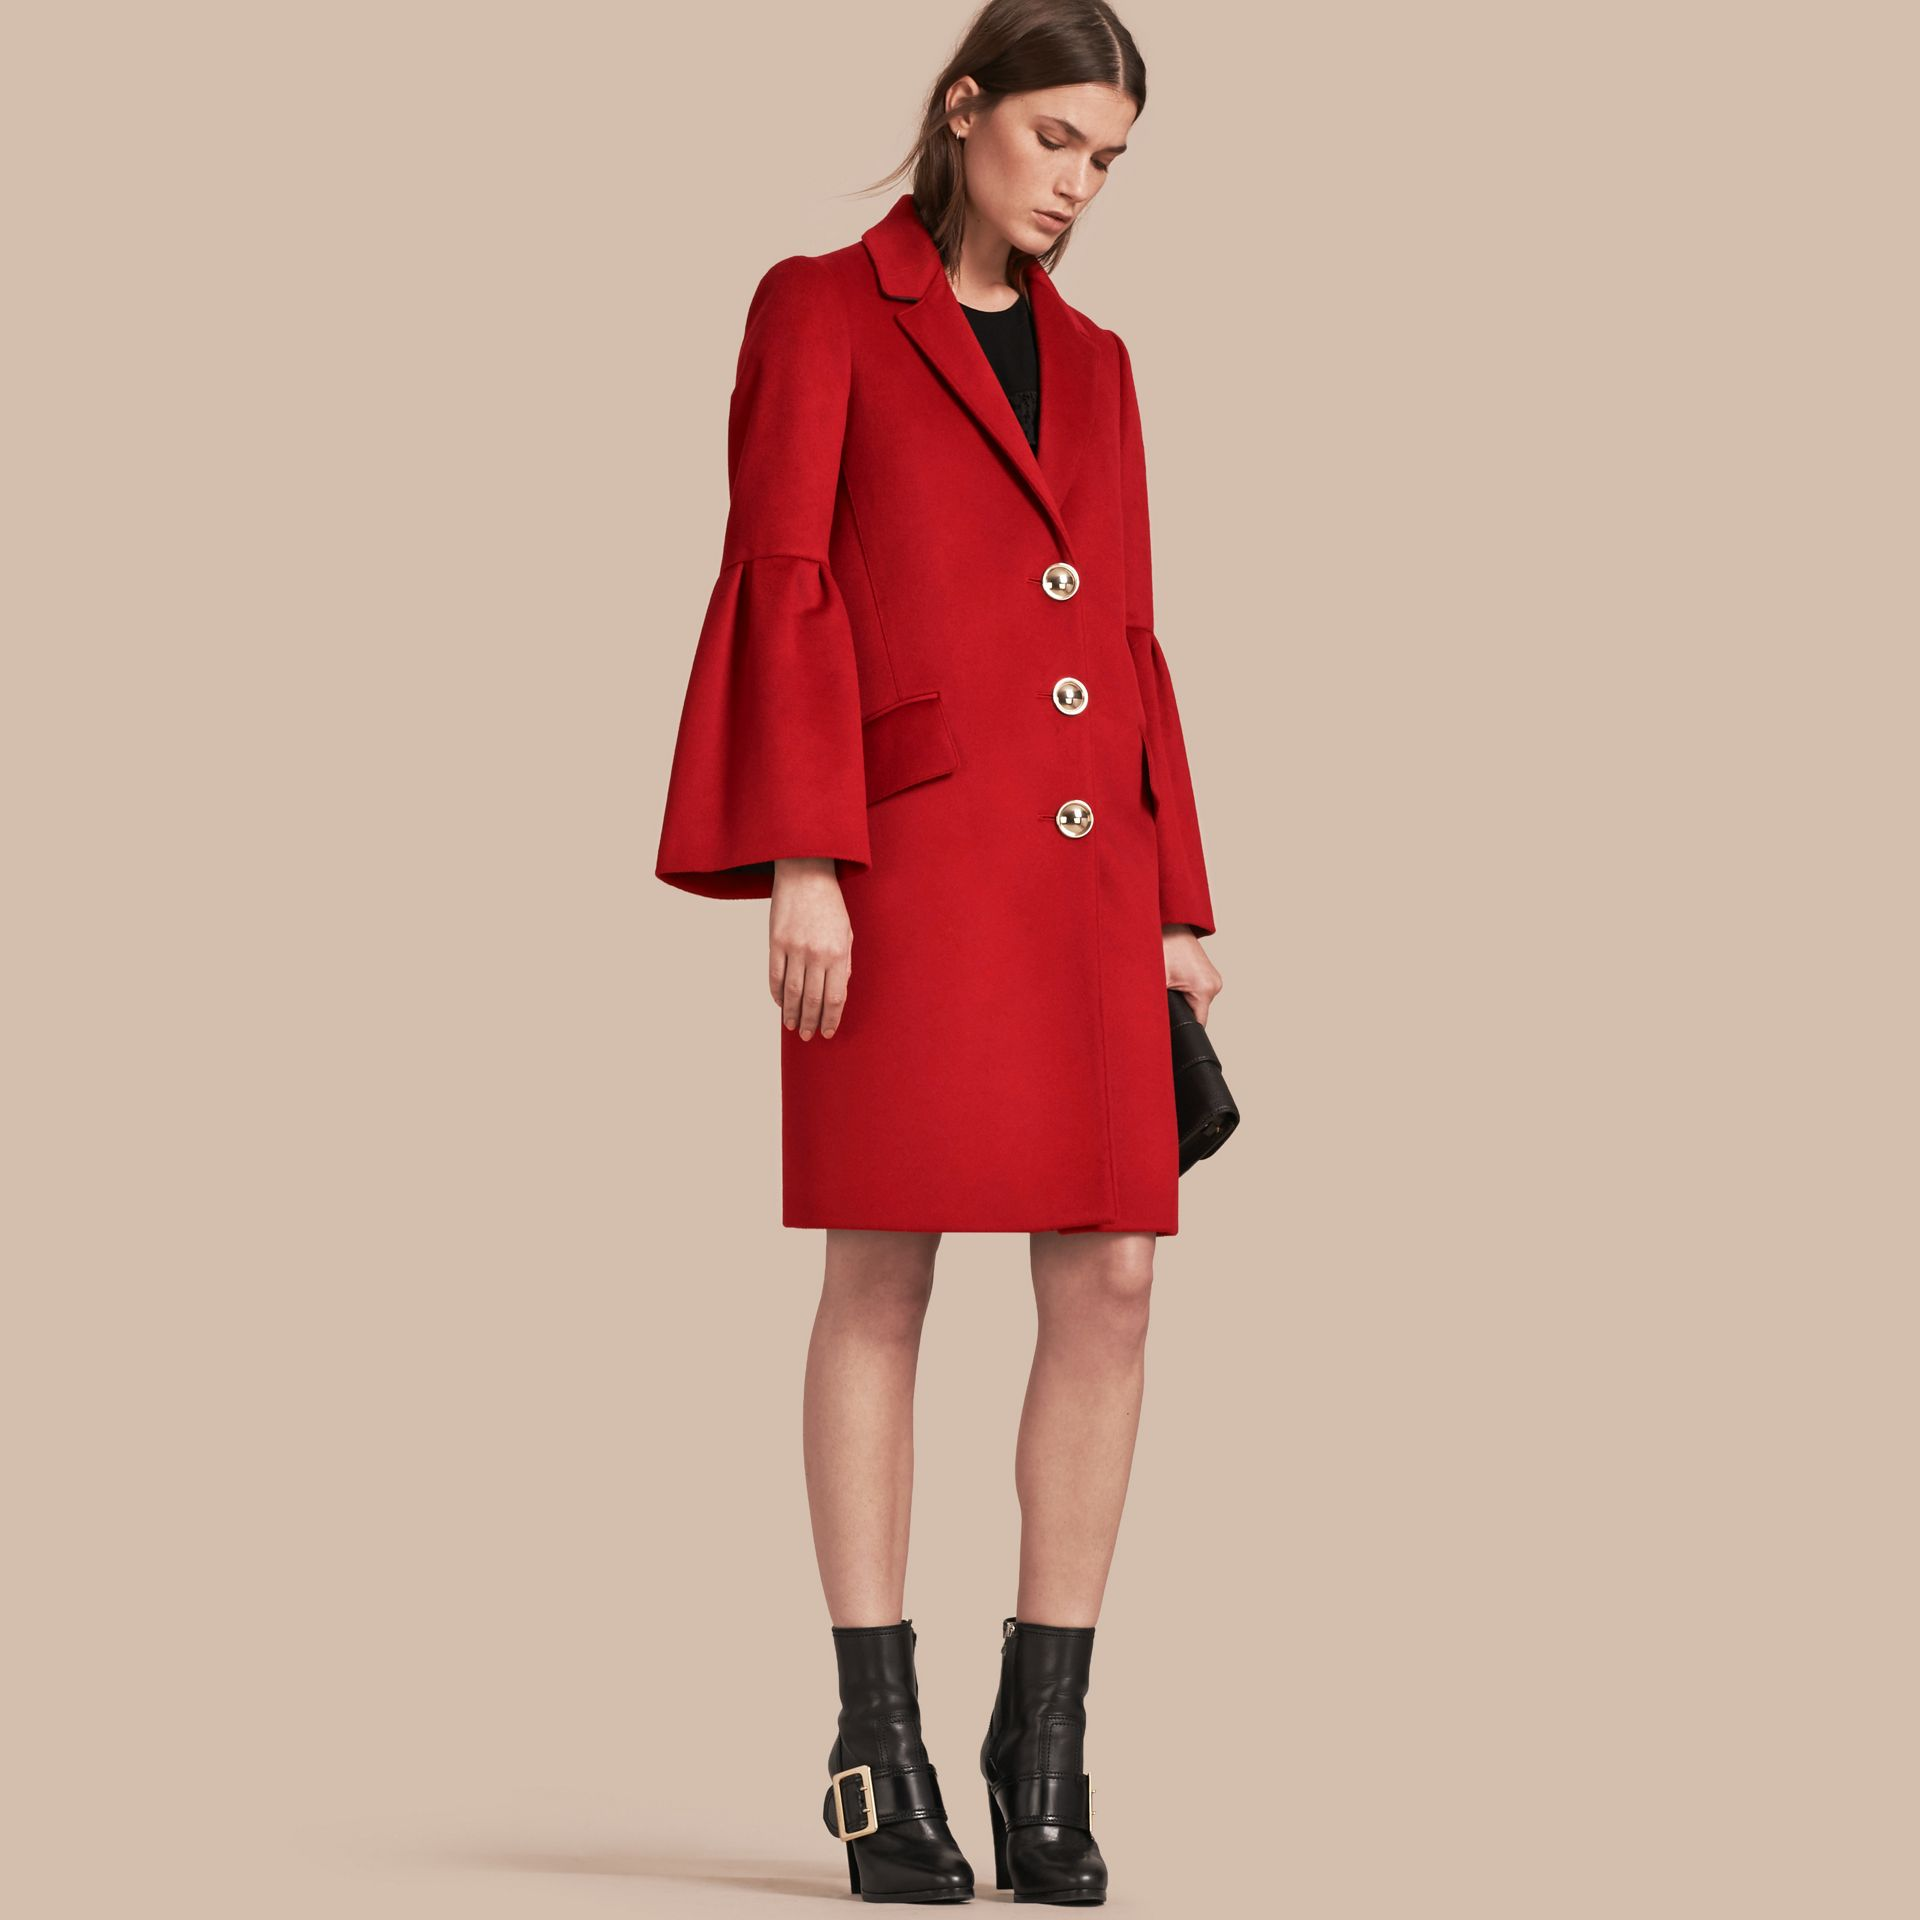 Parade red Tailored Wool Cashmere Coat with Bell Sleeves Parade - gallery image 1